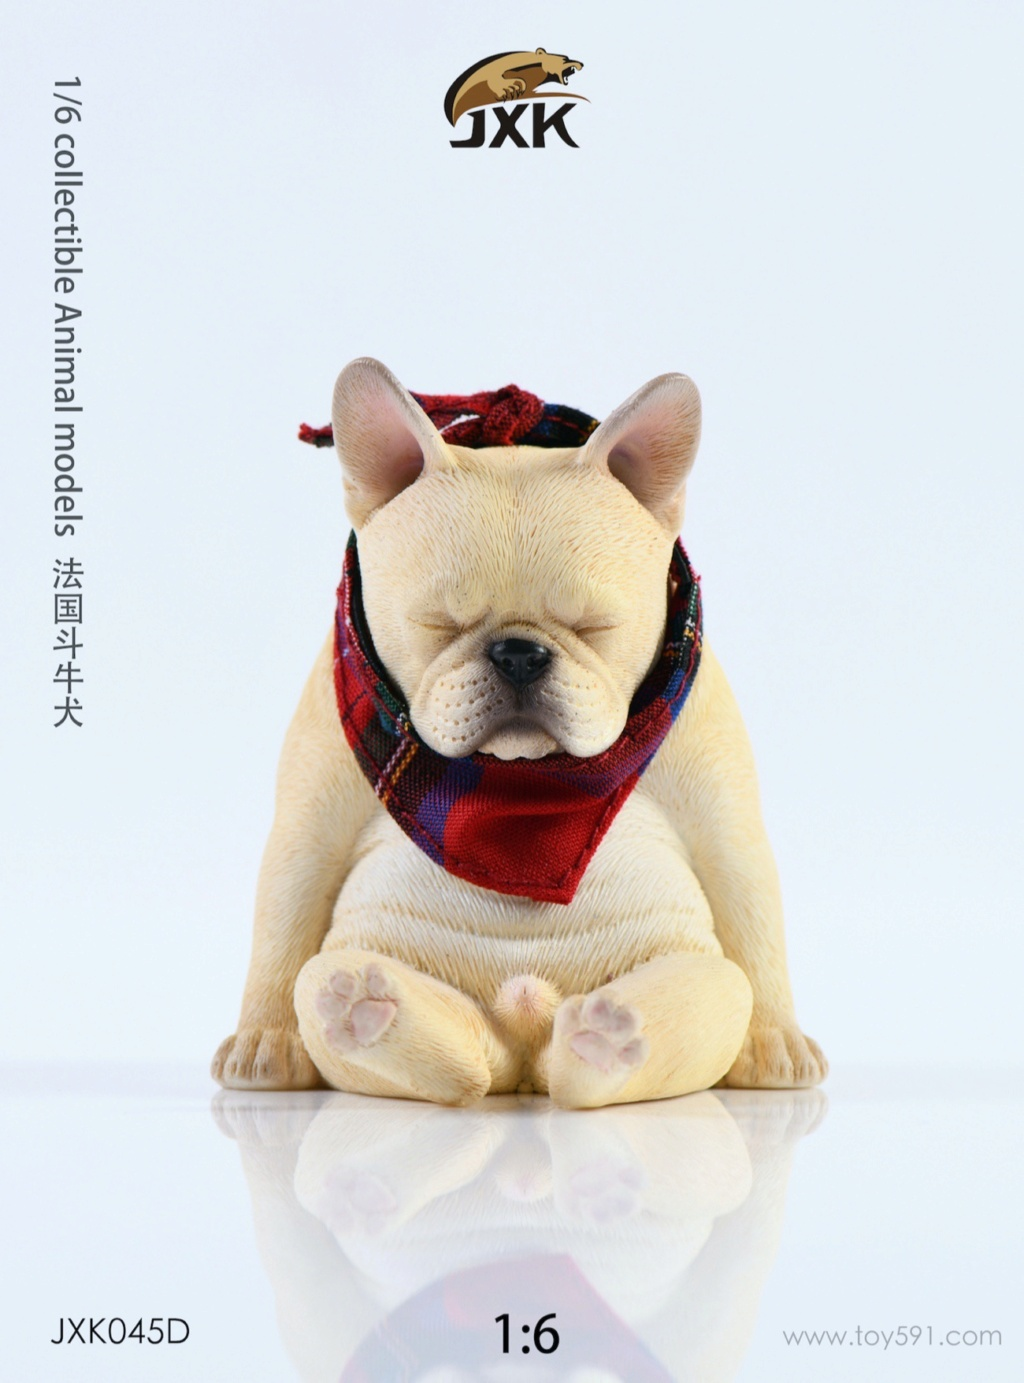 Dog - NEW PRODUCT: JXK 1/6 Decadent Dog JXK045 French Bulldog + Scarf Ab2a4310